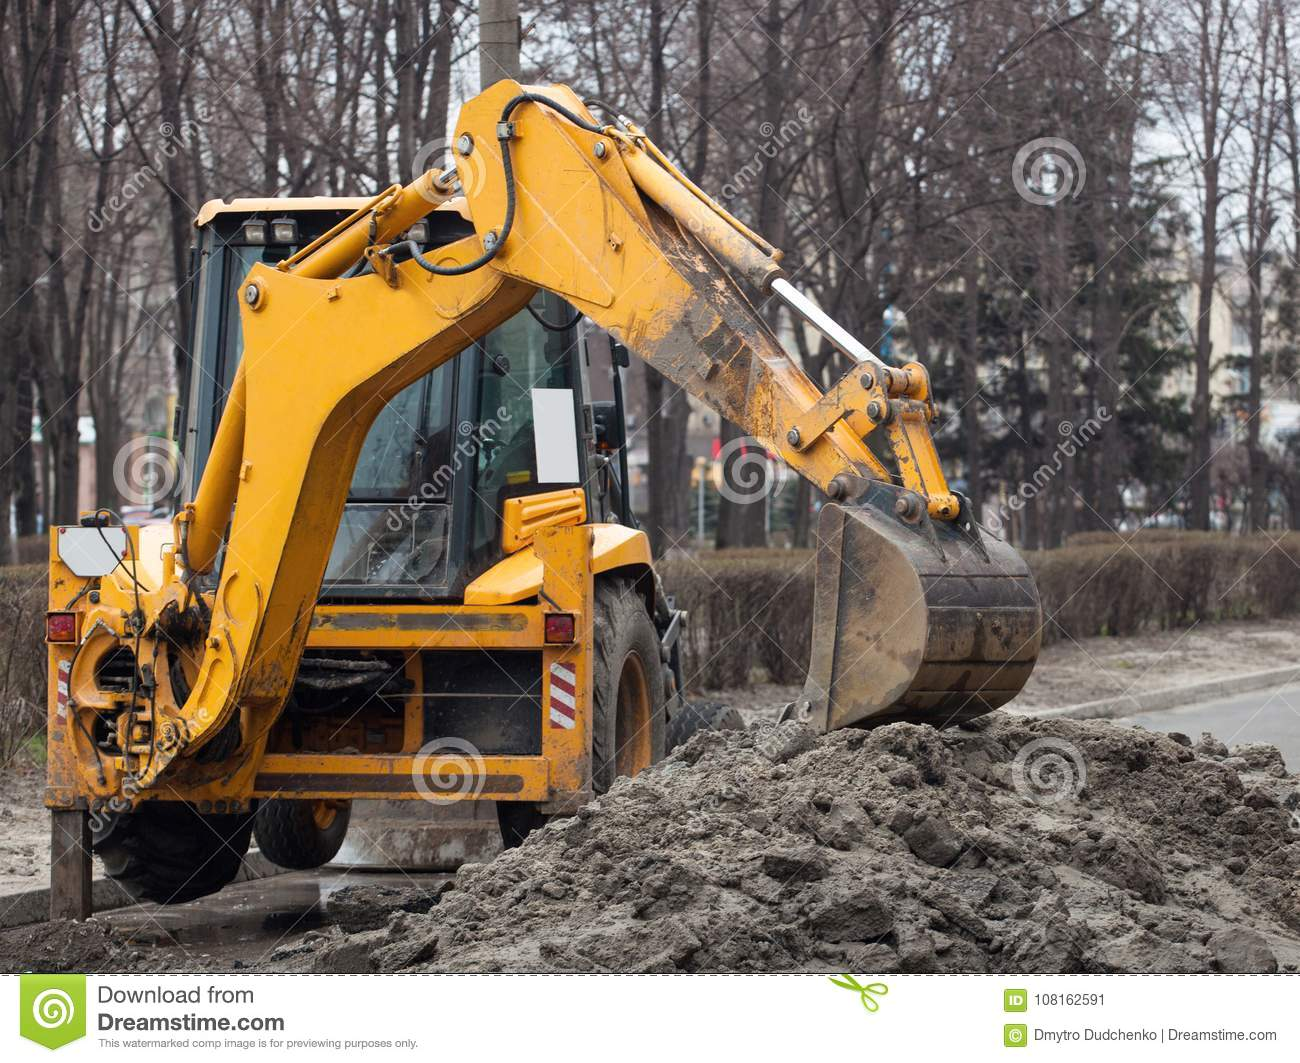 A large yellow excavator stands in the middle of the street near the dug hole